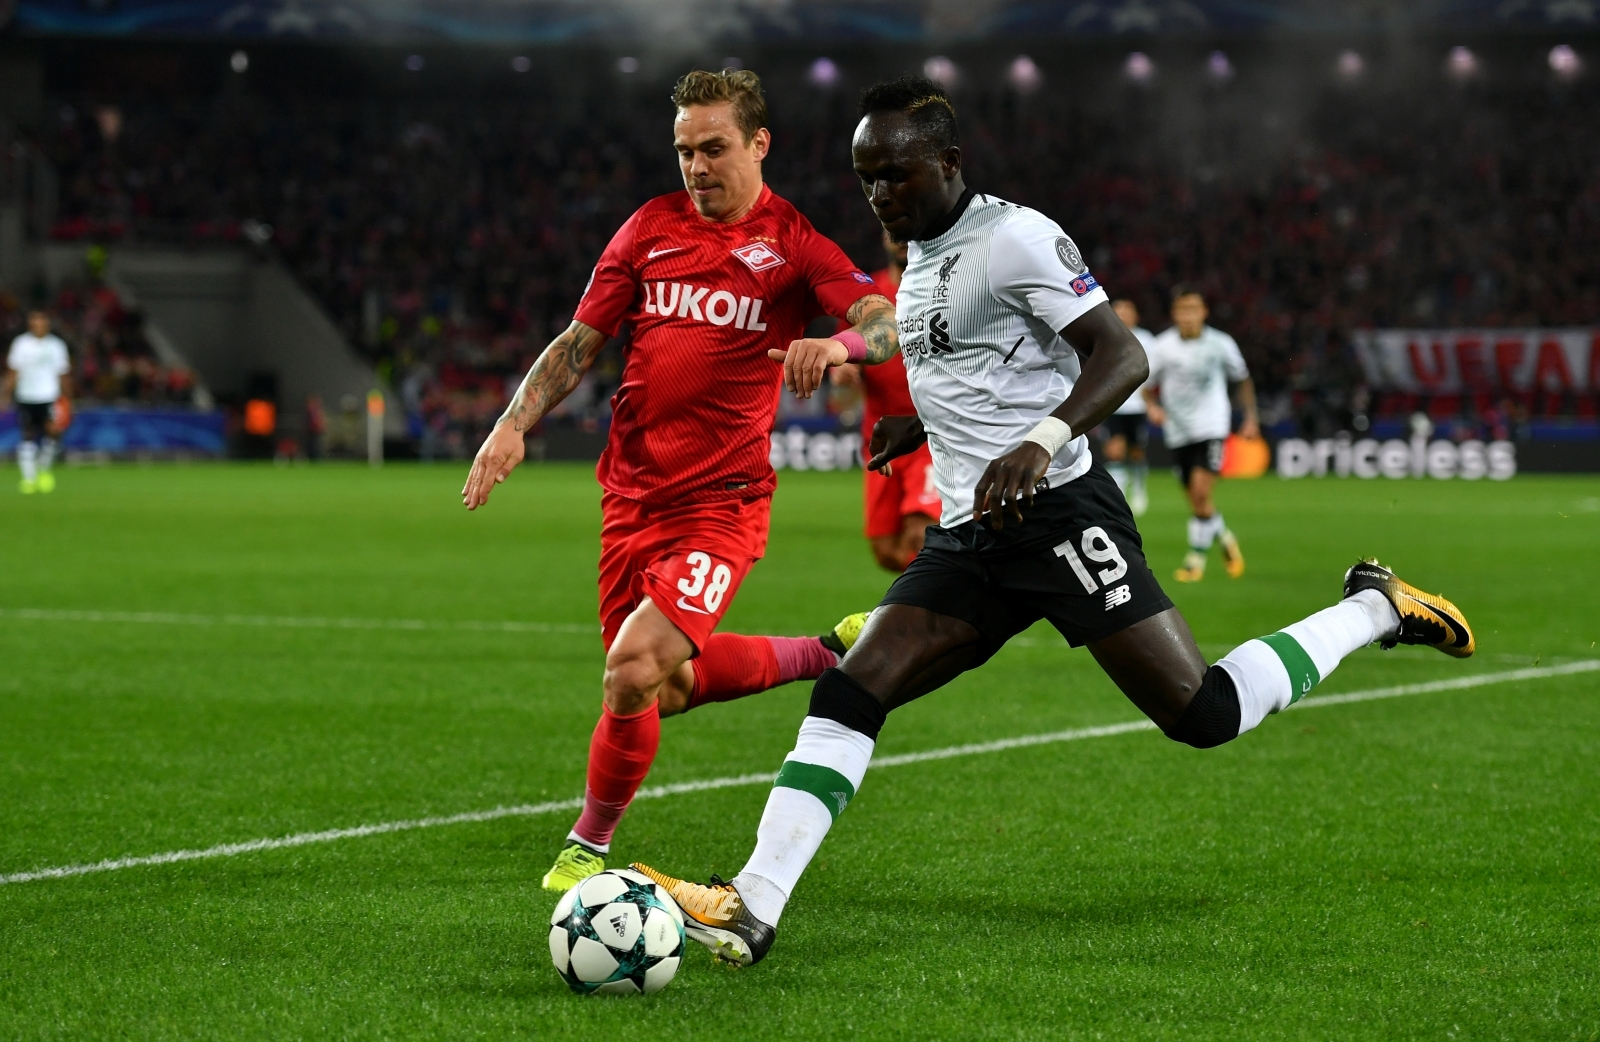 Senegal soccer star Sadio Mane's injury lifts SA